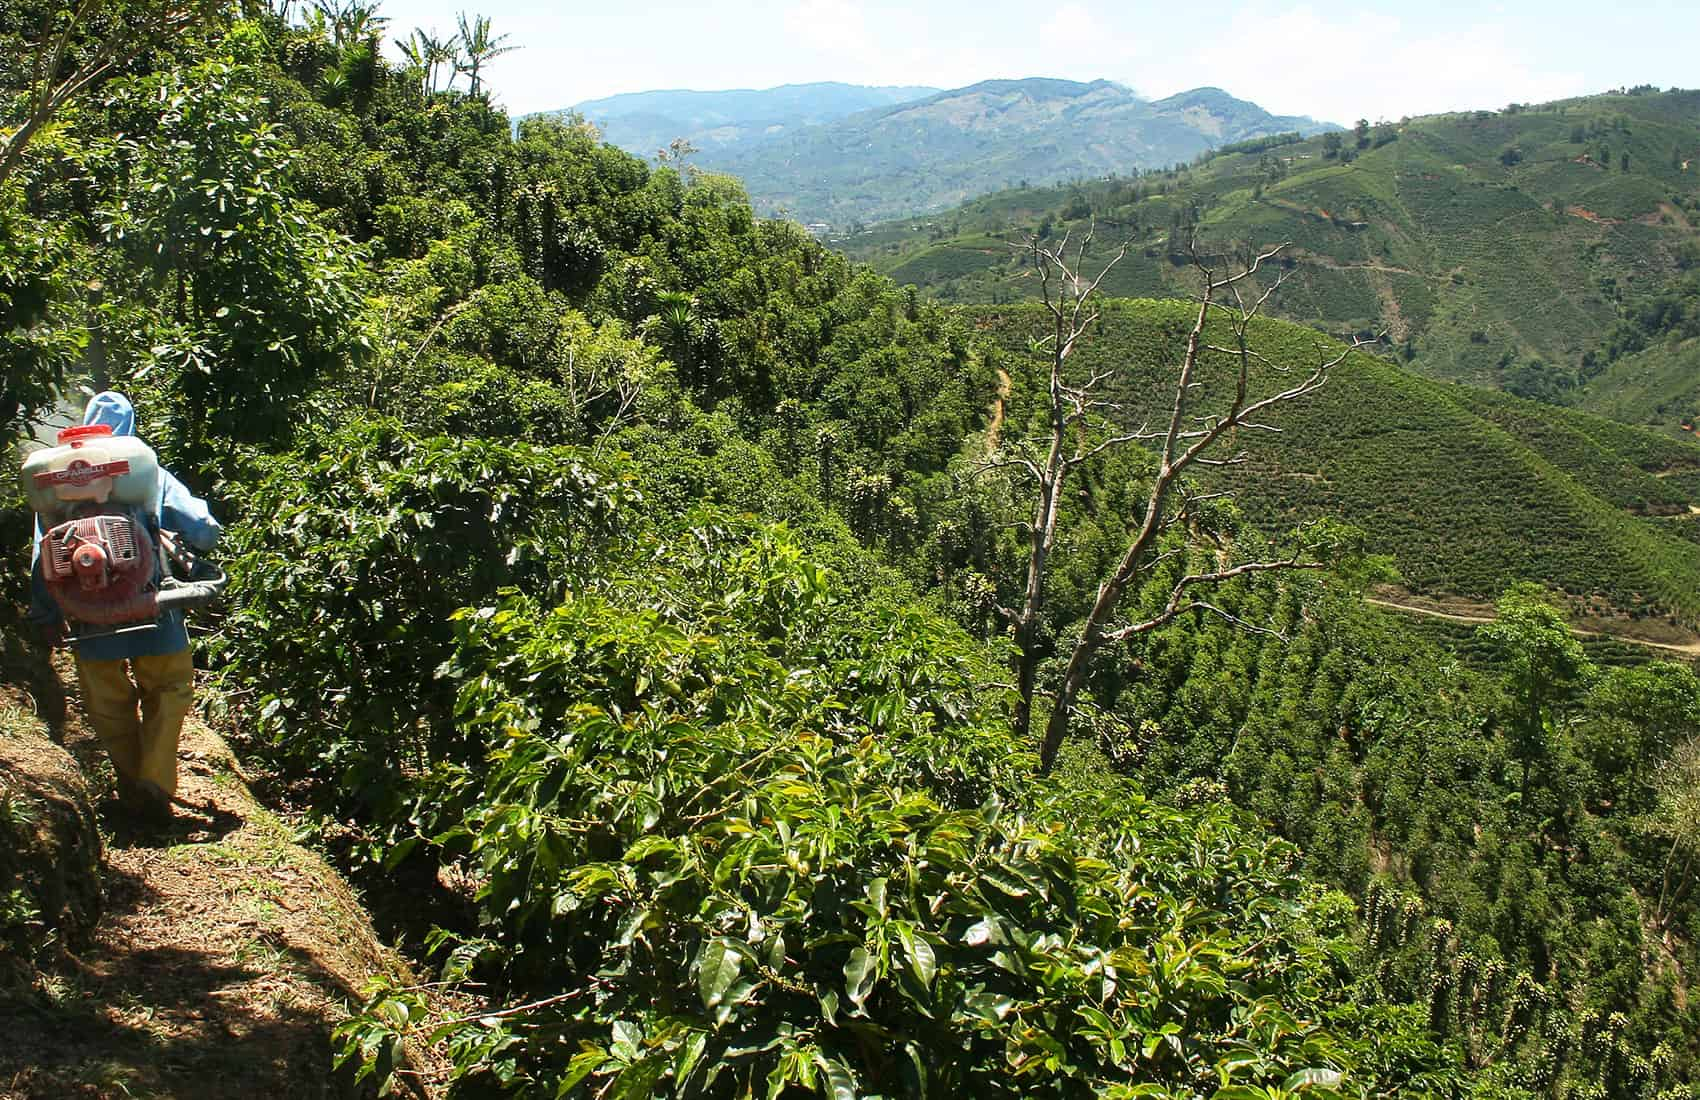 Coffee farm in Costa Rica